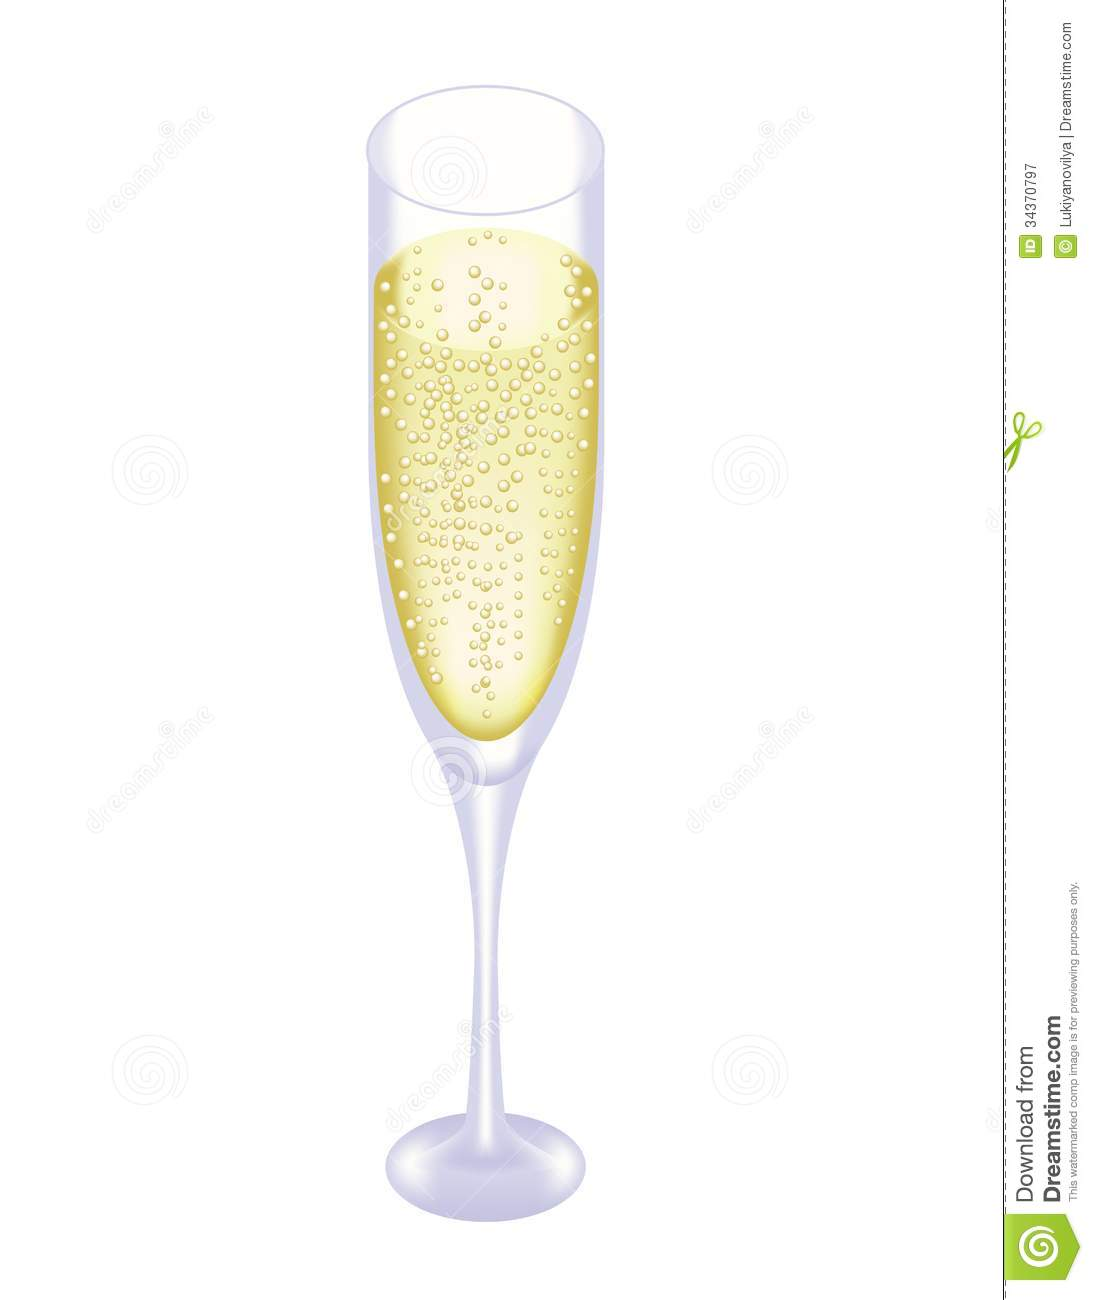 Champagne glass clipart free.